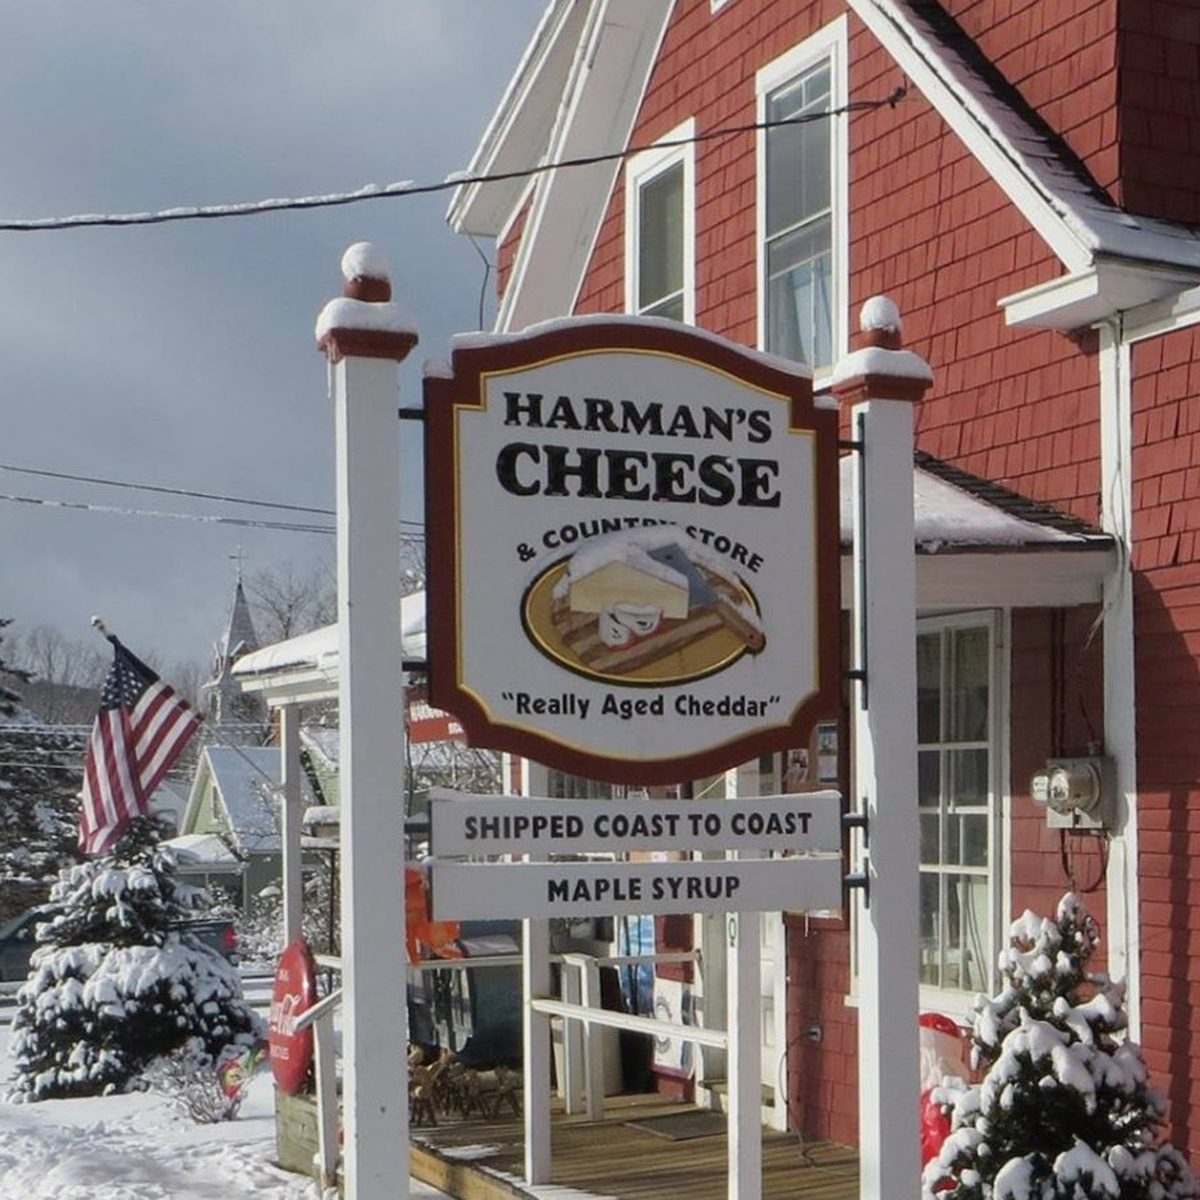 Harman's Cheese & Country Store